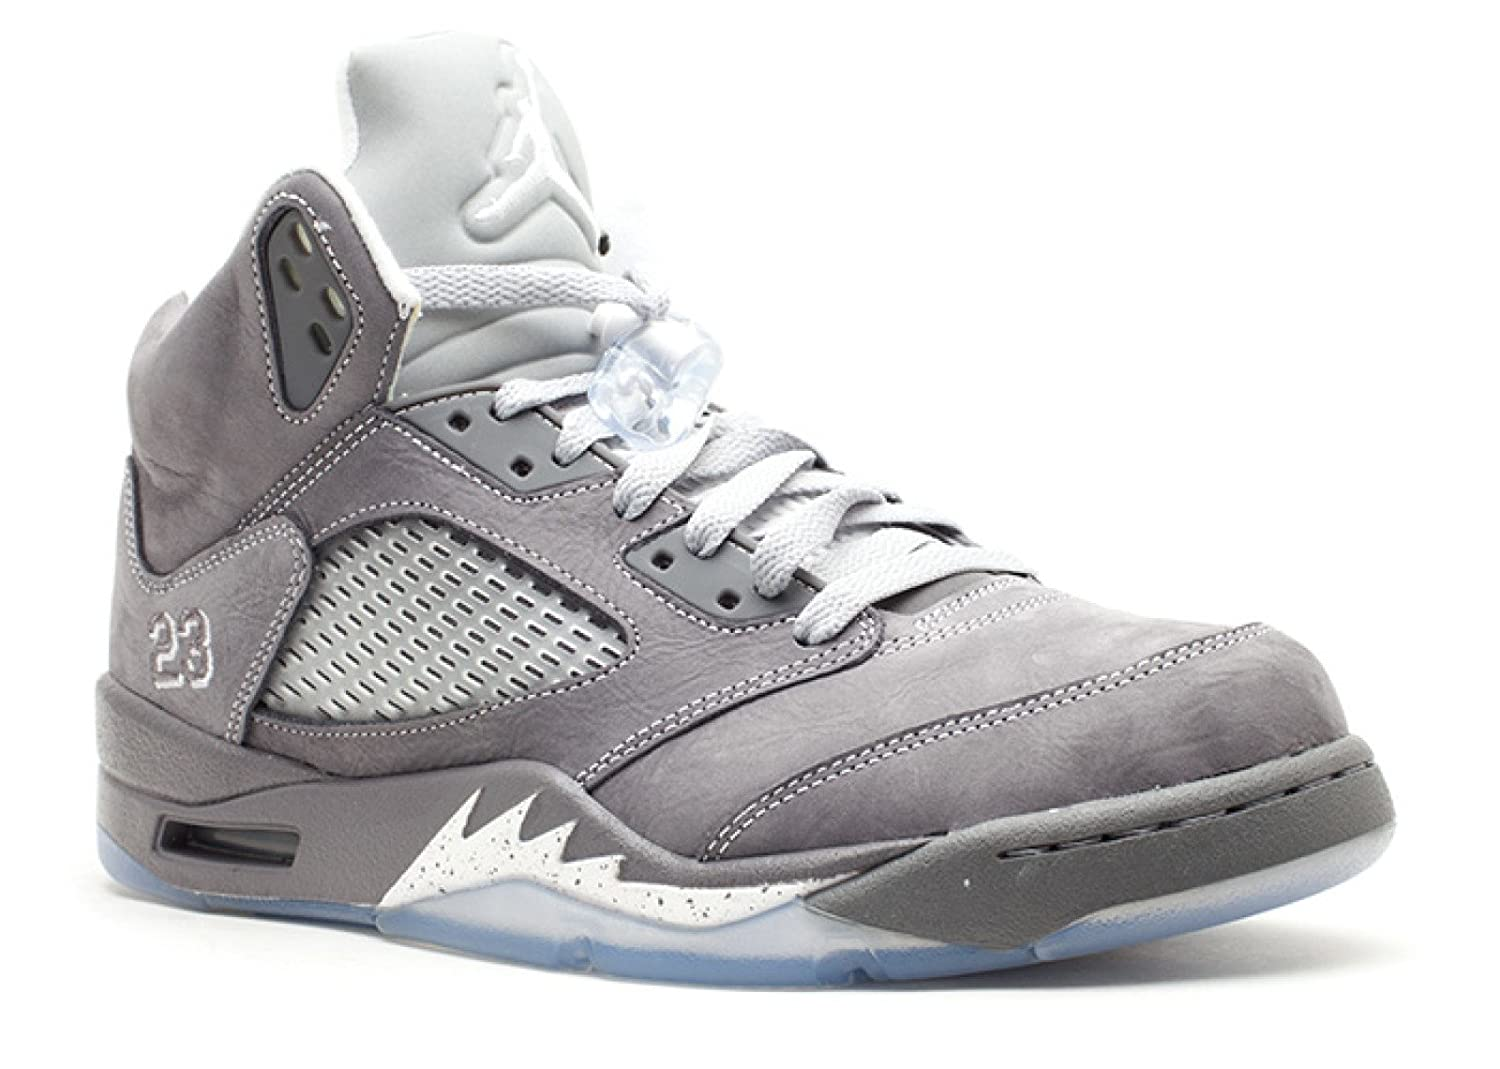 best service 537f0 11916 Air Jordan V (5) Retro (Light Graphite / White-Wolf Grey) 10 D(M) US